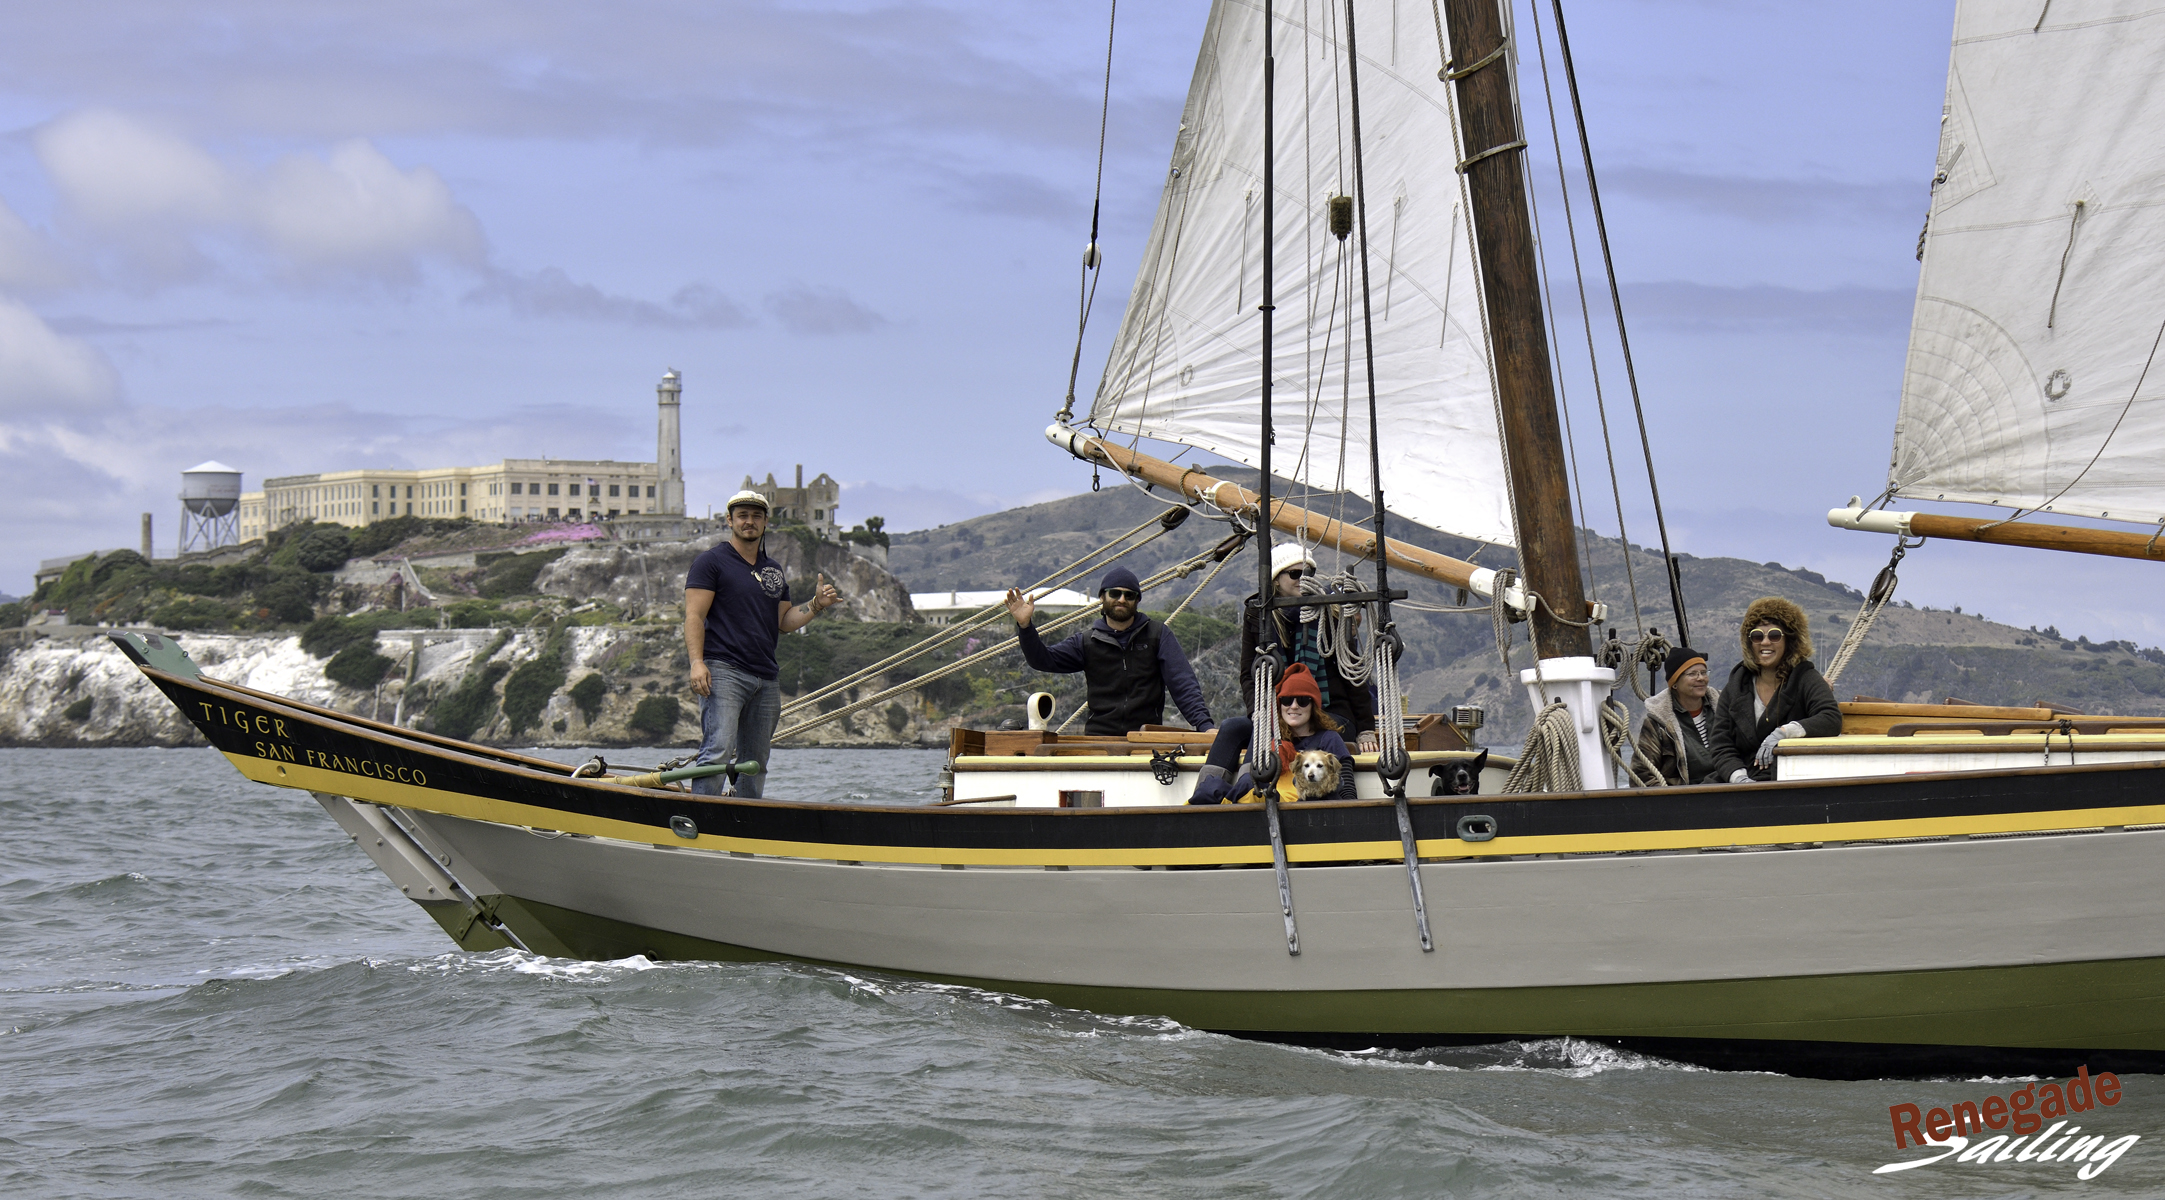 1830 gal  Tiger,  built in Essex, Massachusetts, is a 60-foot pinky schooner. She was used for commercial fishing of mackerel and cod until roughly 1875. Finely restored, she now makes her home in San Francisco and frequently welcomes charter guests for day sails.